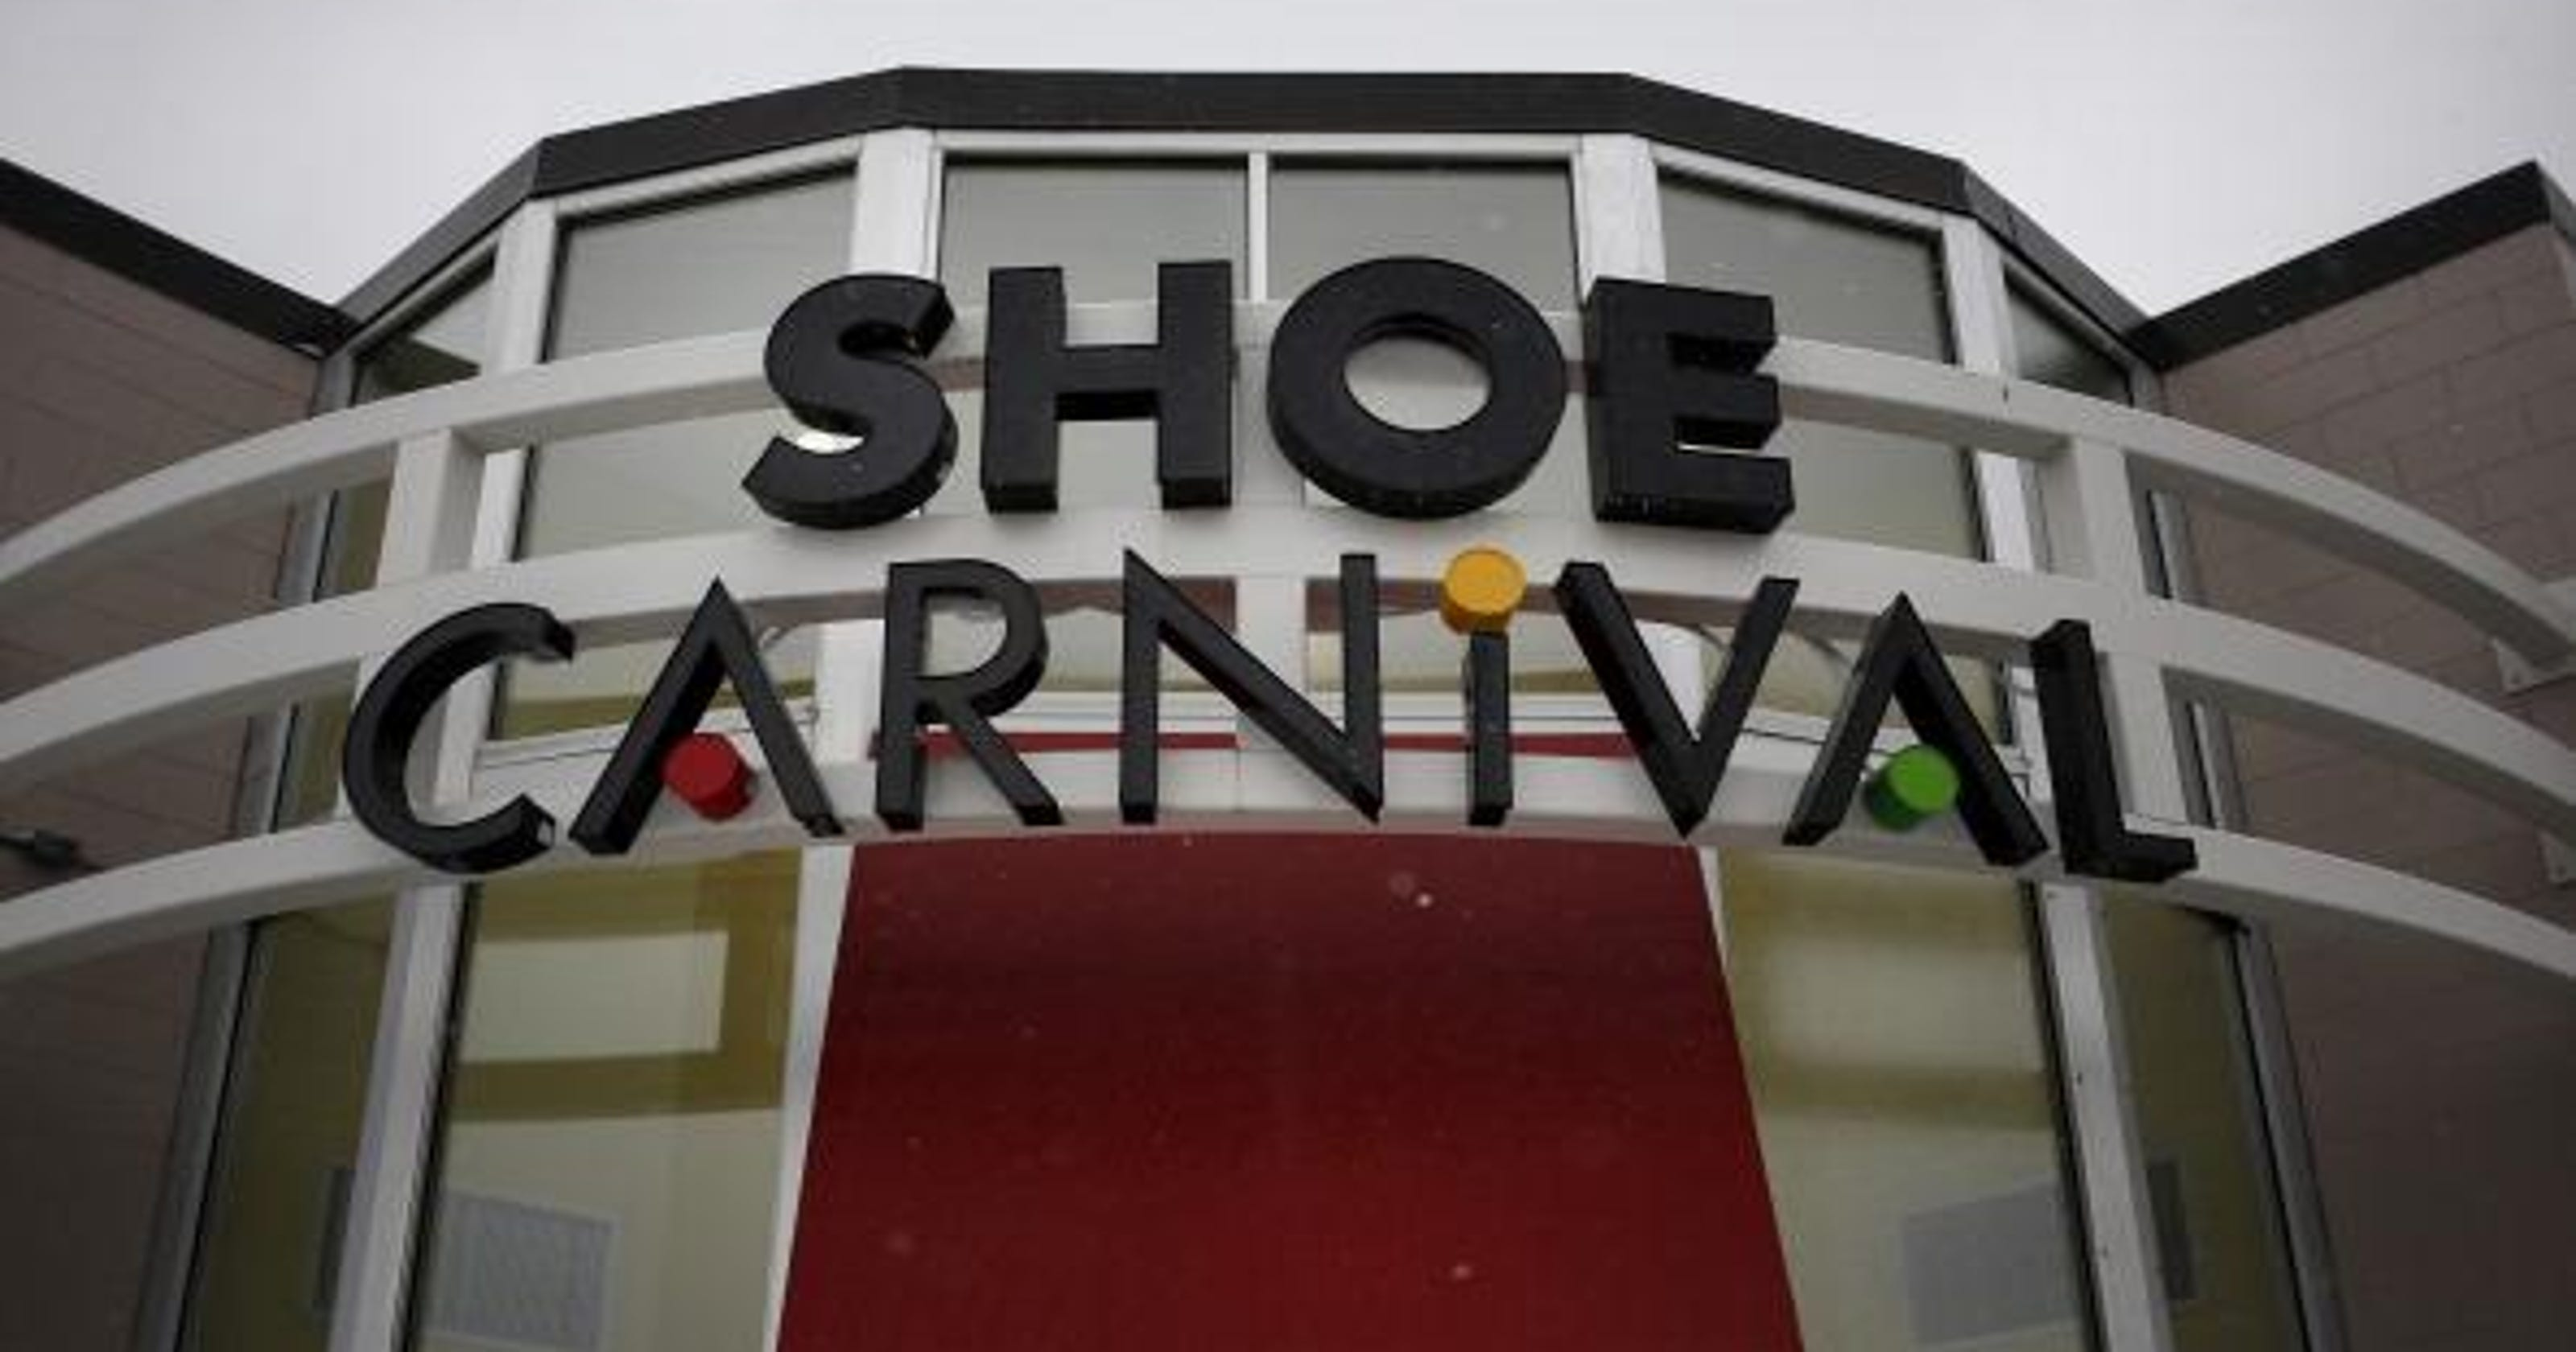 d5ed2a3345 Shoe Carnival opening stores just in time for back to school